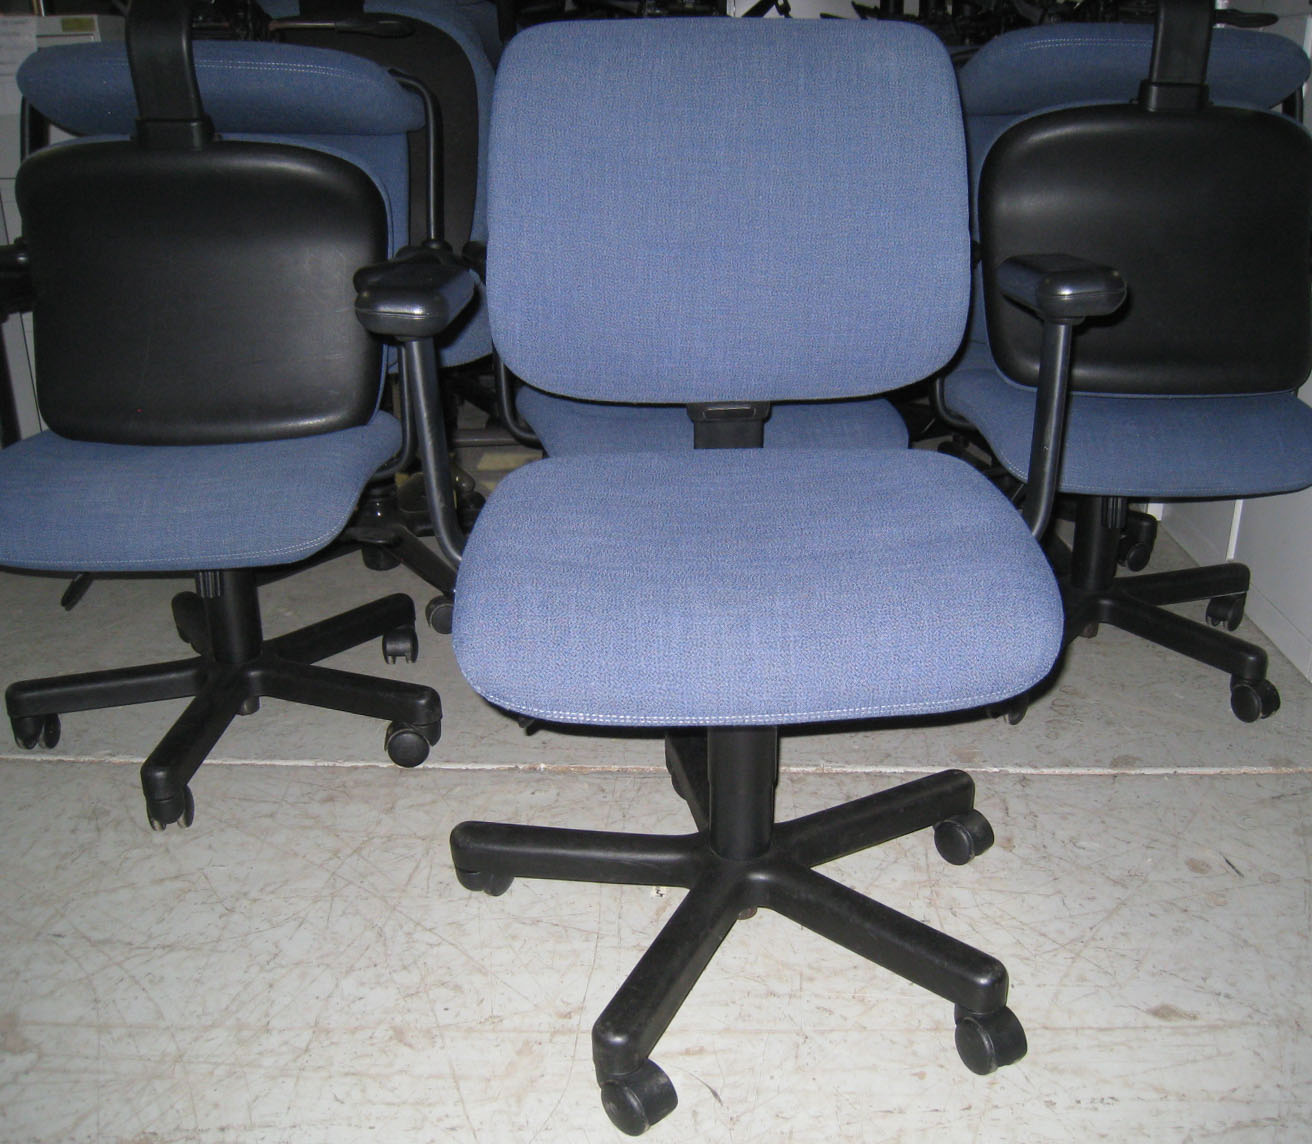 Hot BuysAffordable Office InteriorsOffice Furniture